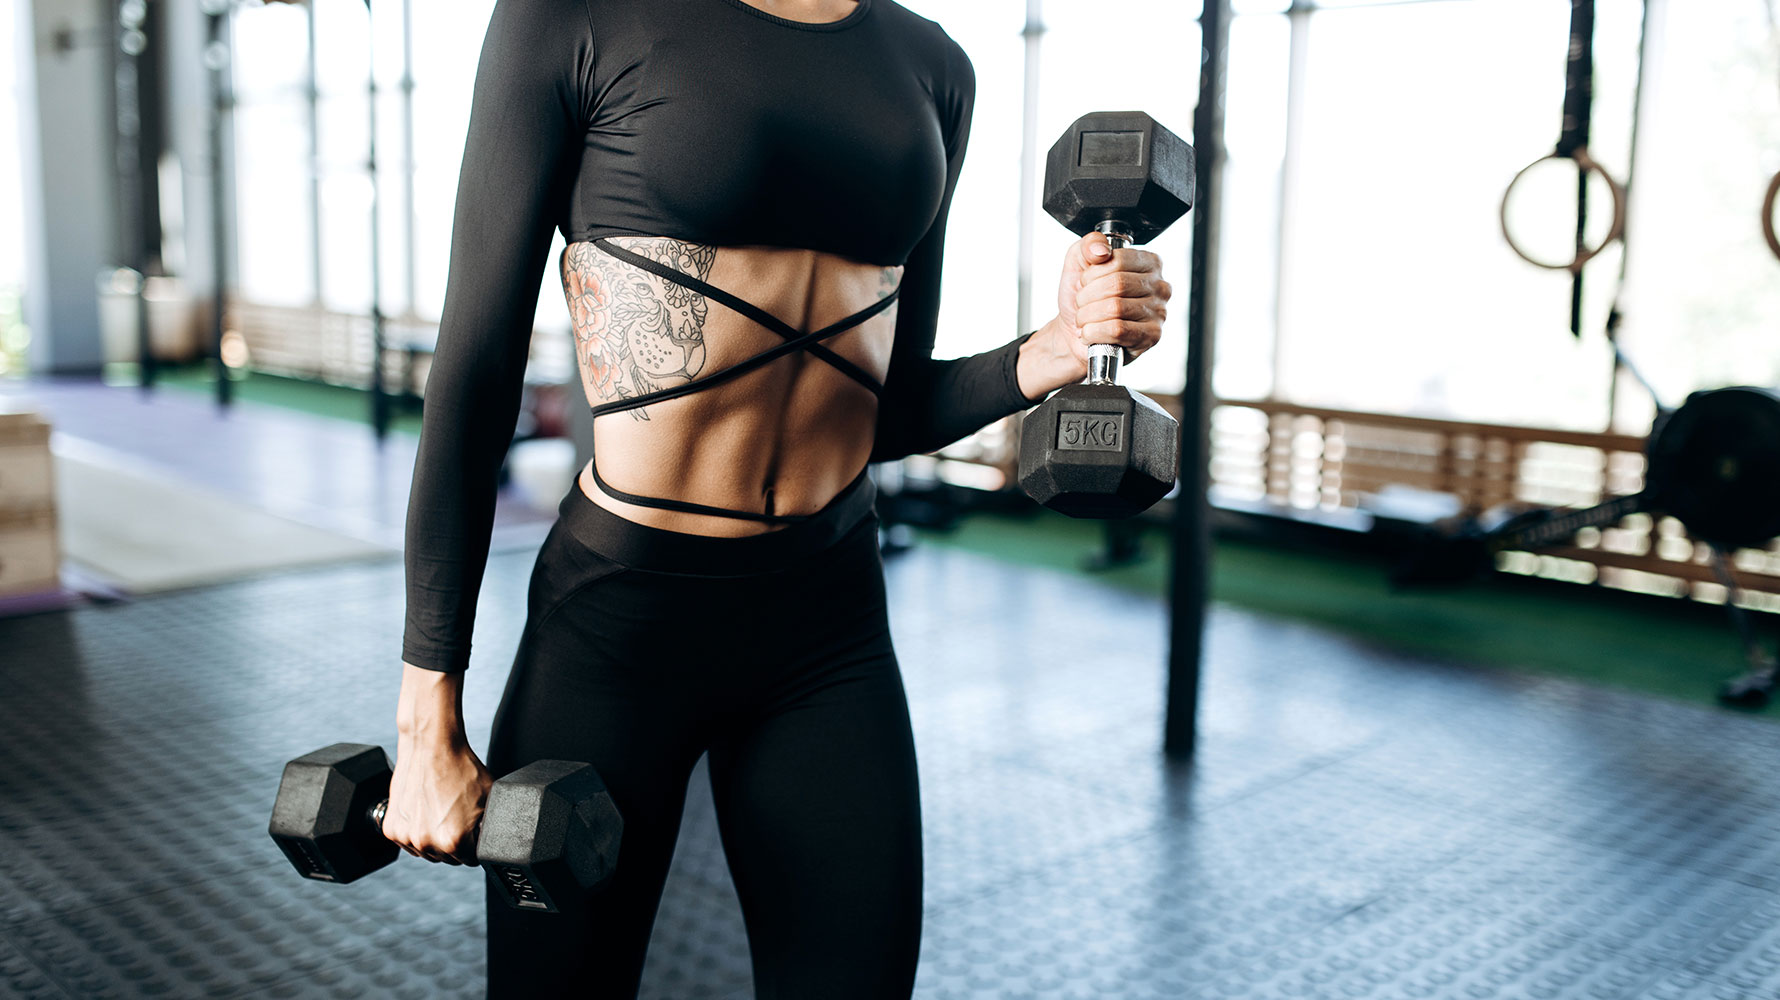 performing shrugs with dumbbells